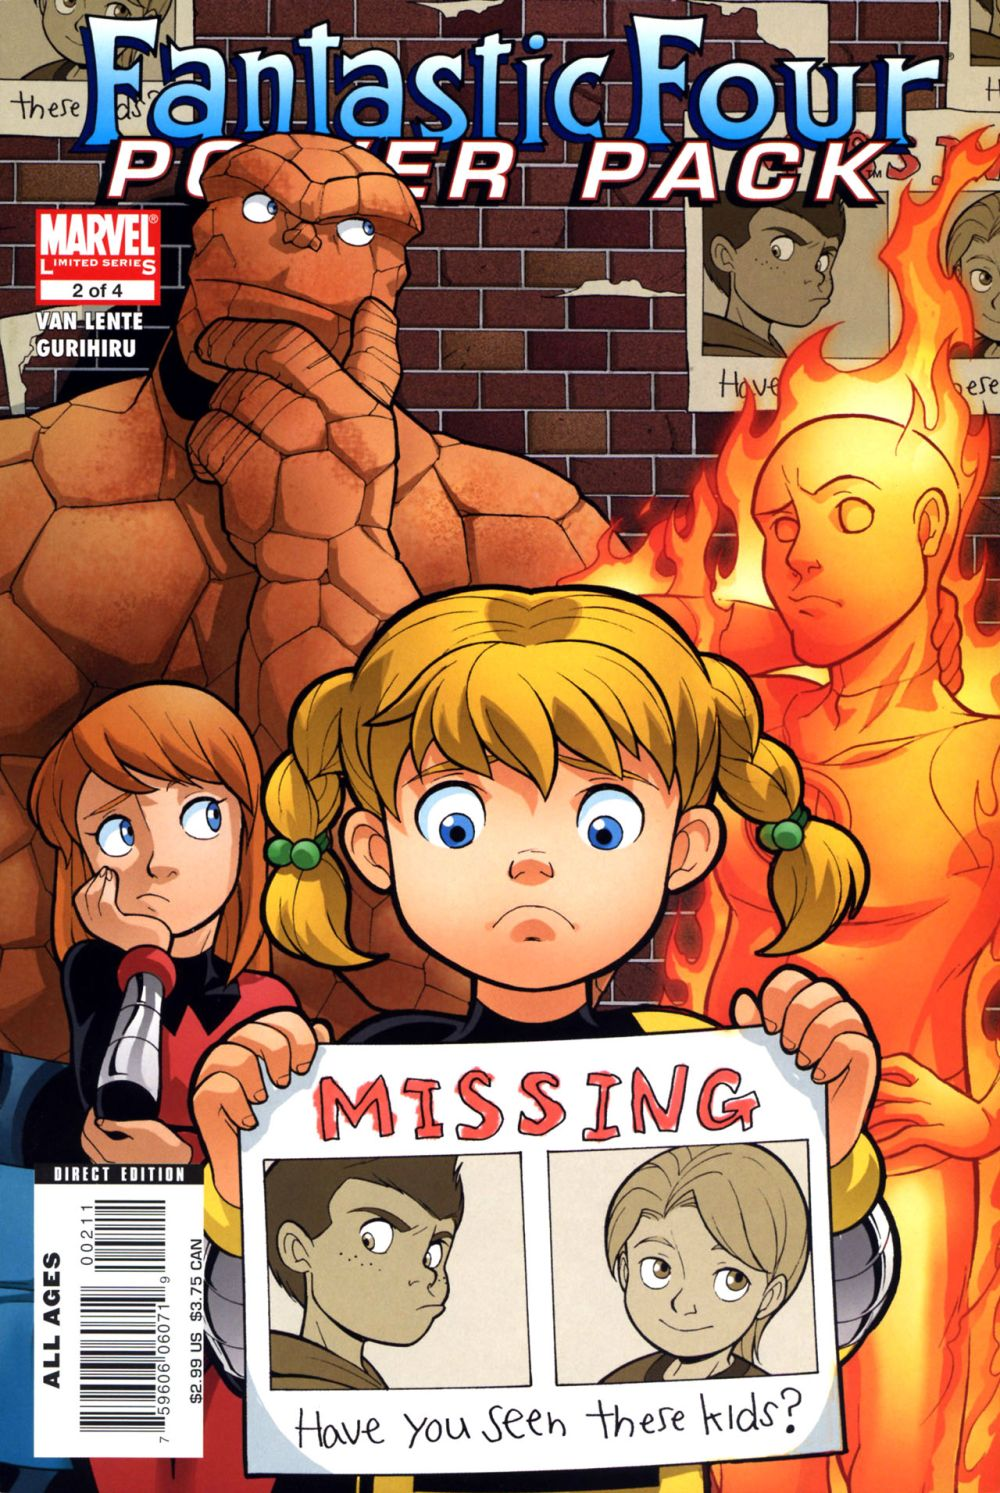 Fantastic Four- Power Pack [Marvel] Mini 1 0002.jpg